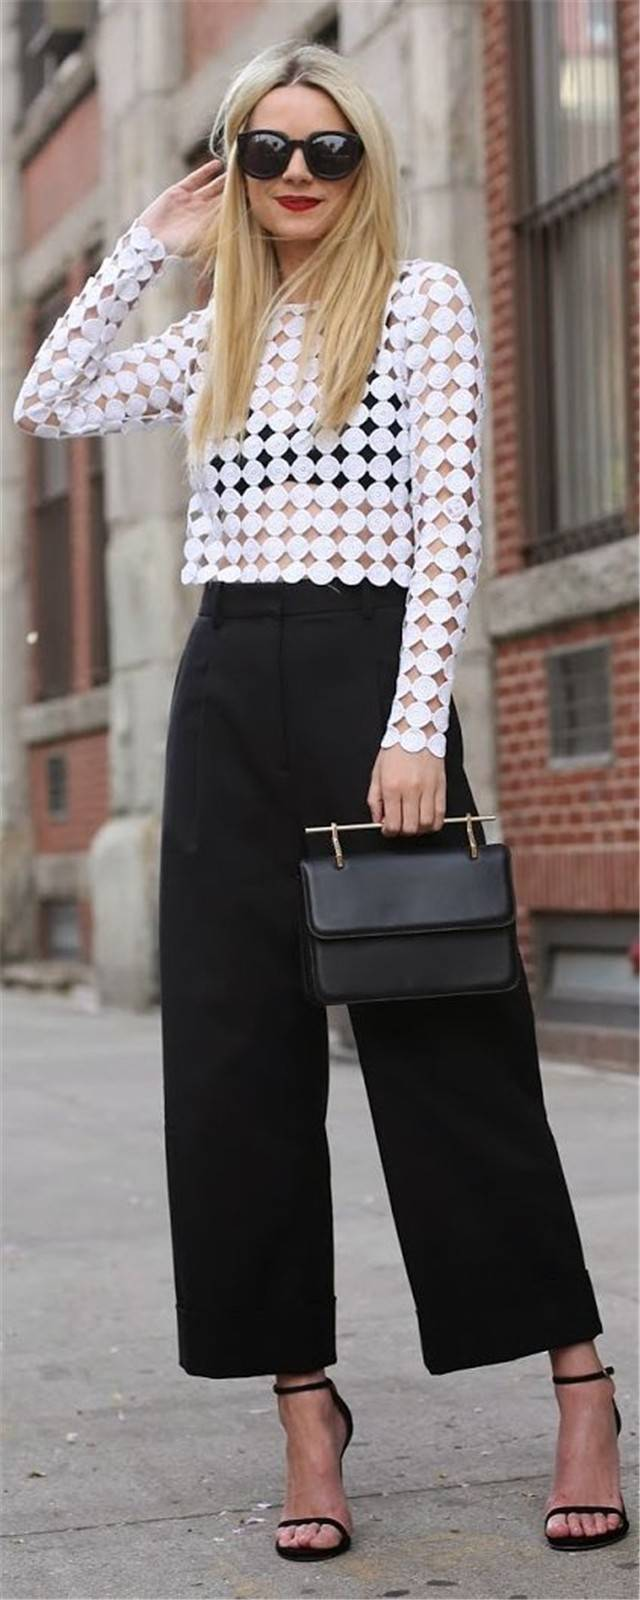 summer-work-outfit-crop-oversized-shirt 80+ Elegant Summer Outfit Ideas for Business Women in 2019